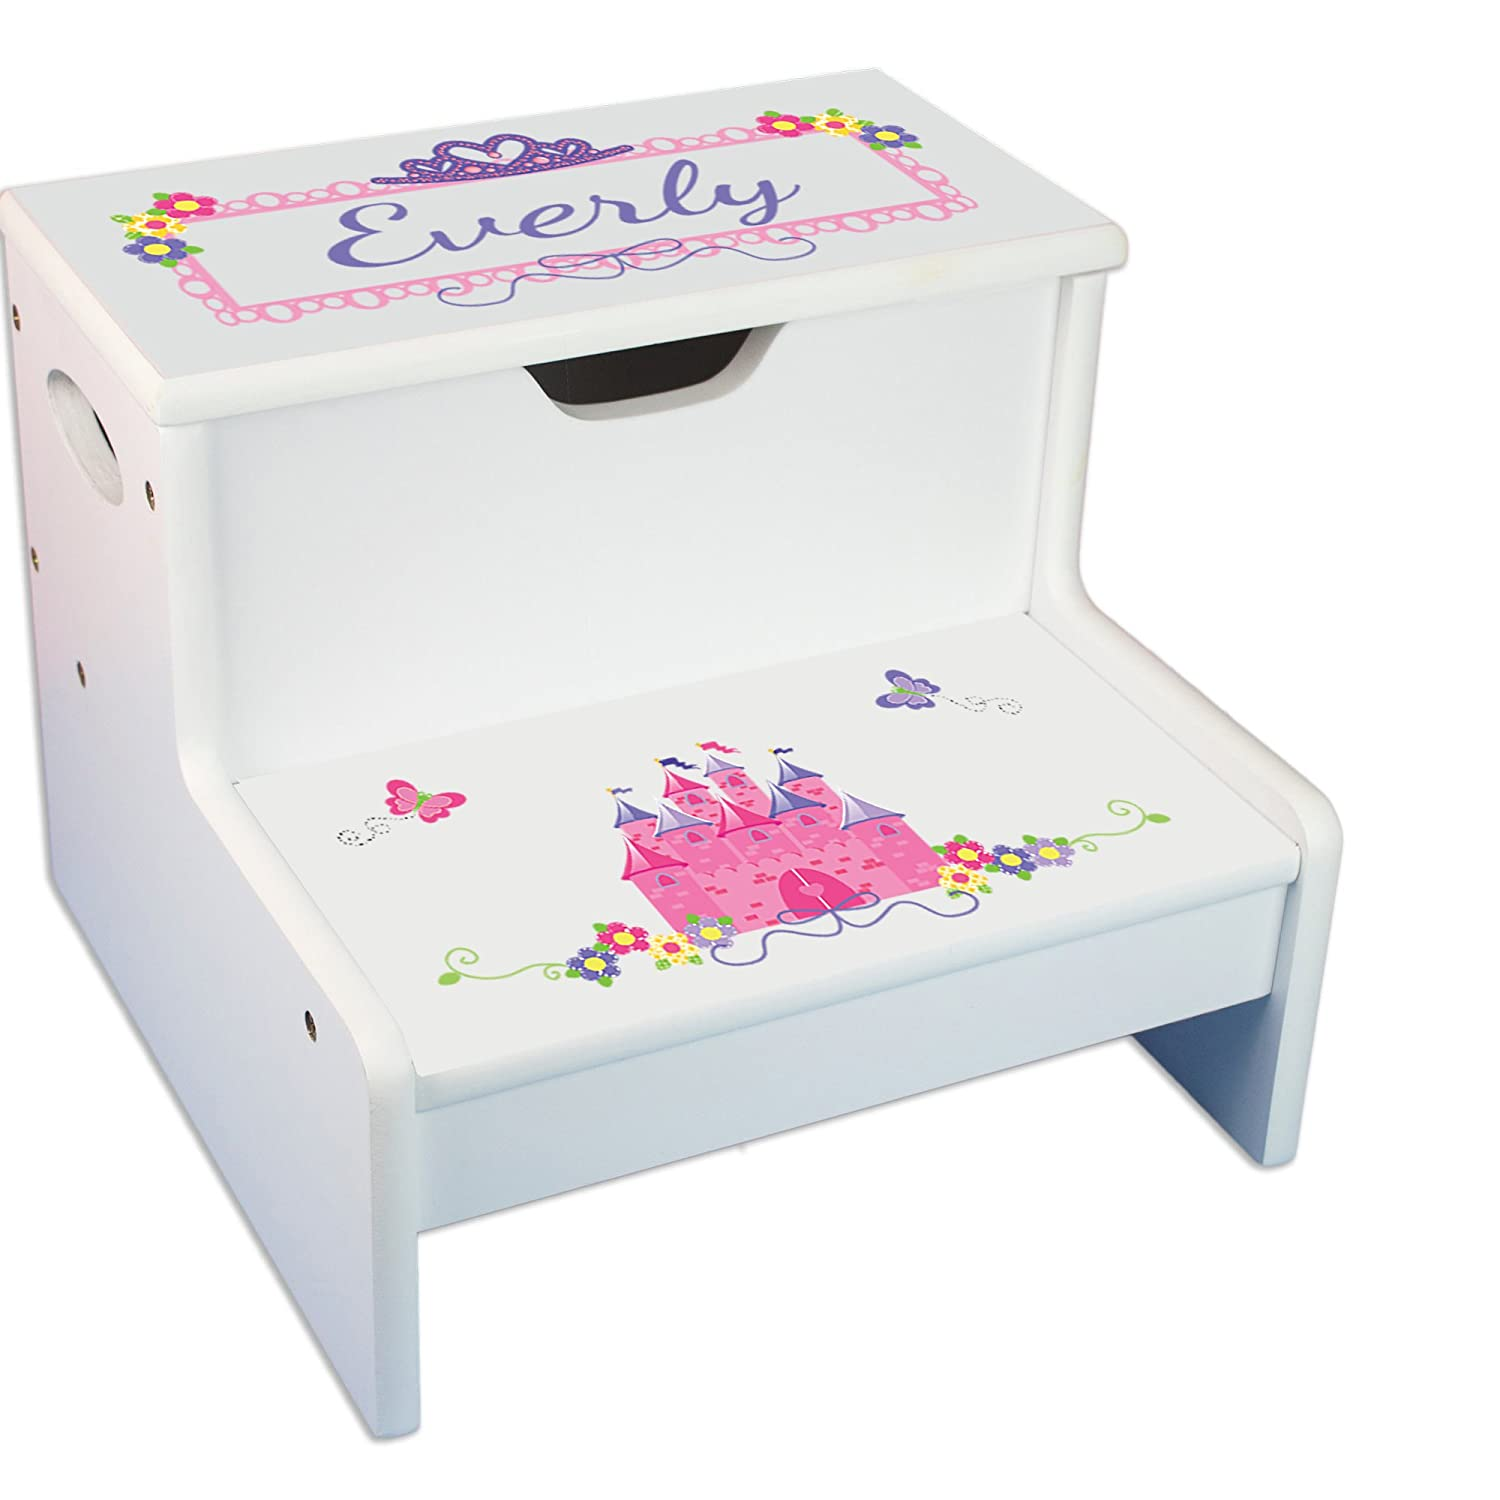 Girls Personalized Step Stool with Storage